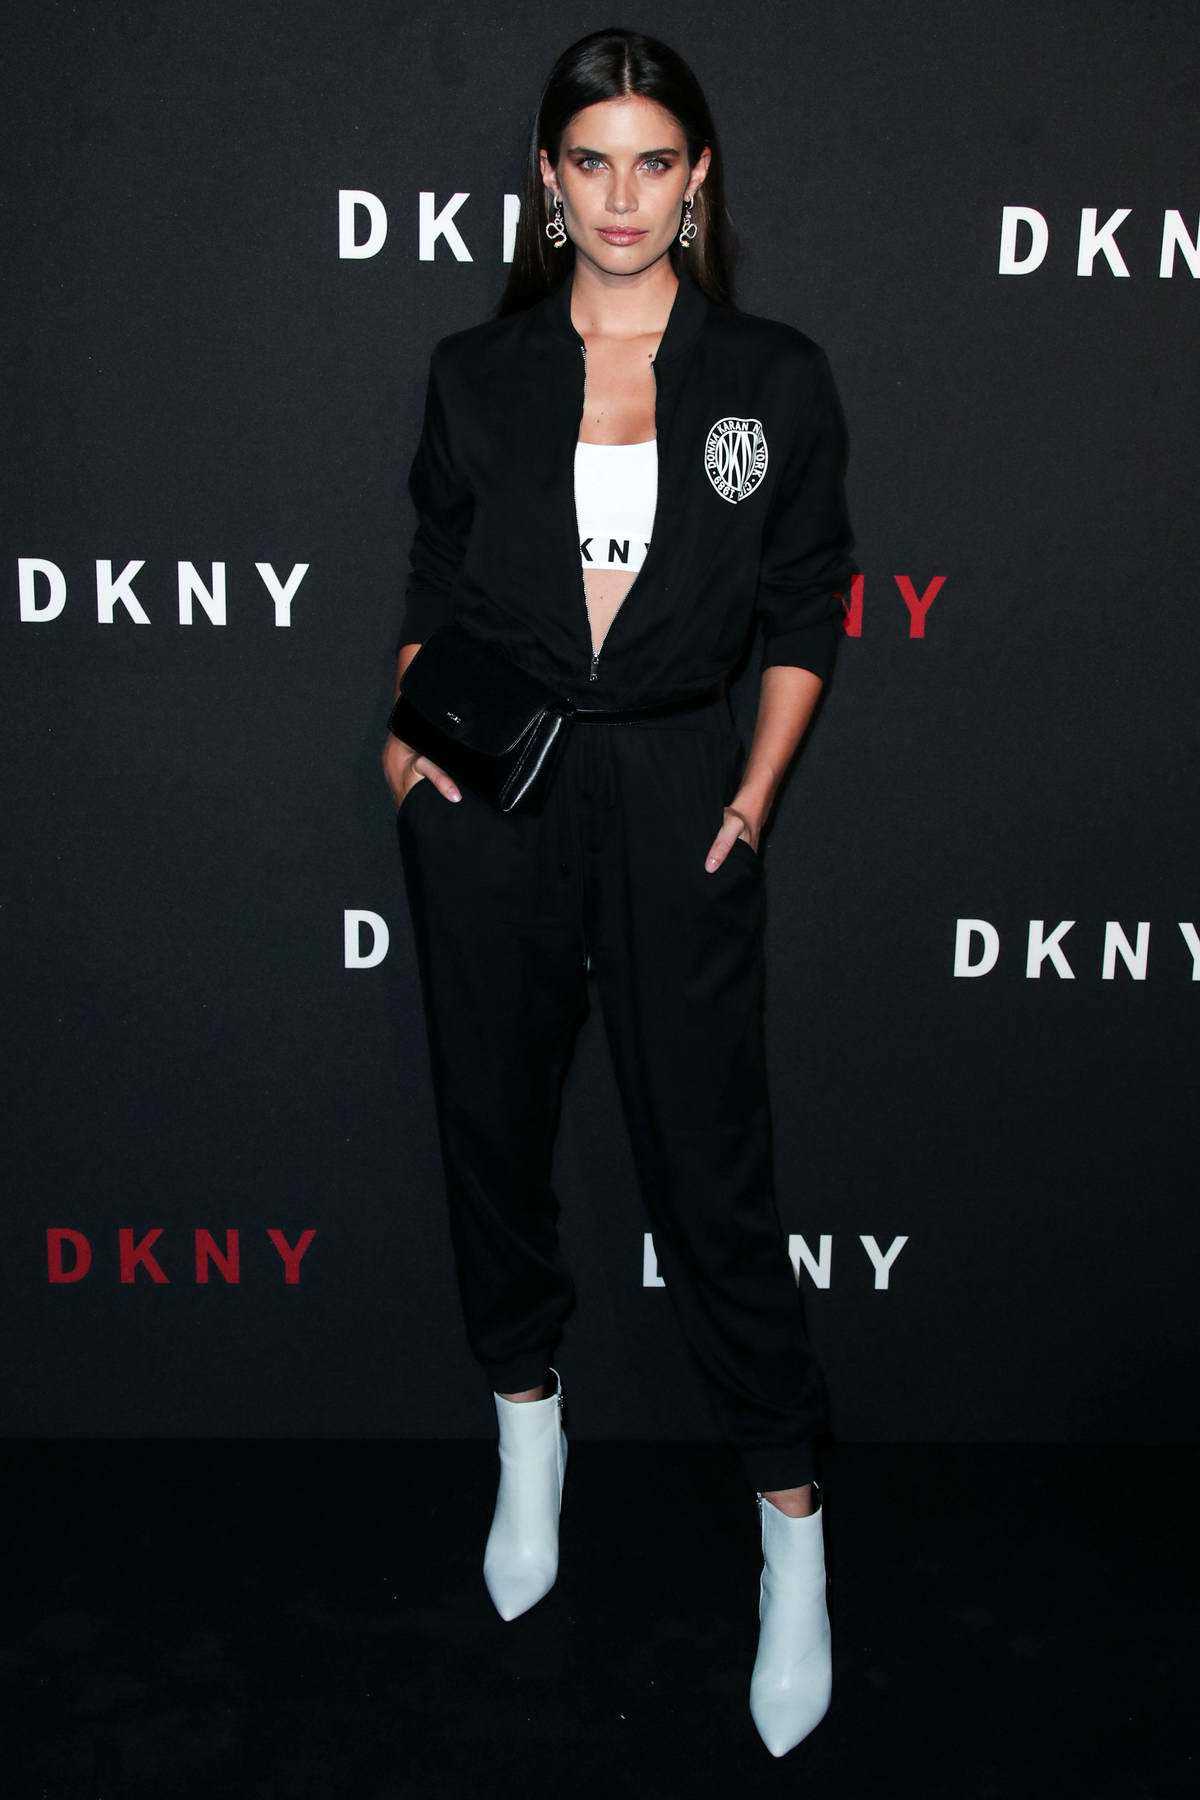 Sara Sampaio attends DKNY 30th birthday party during New York Fashion Week in New York City